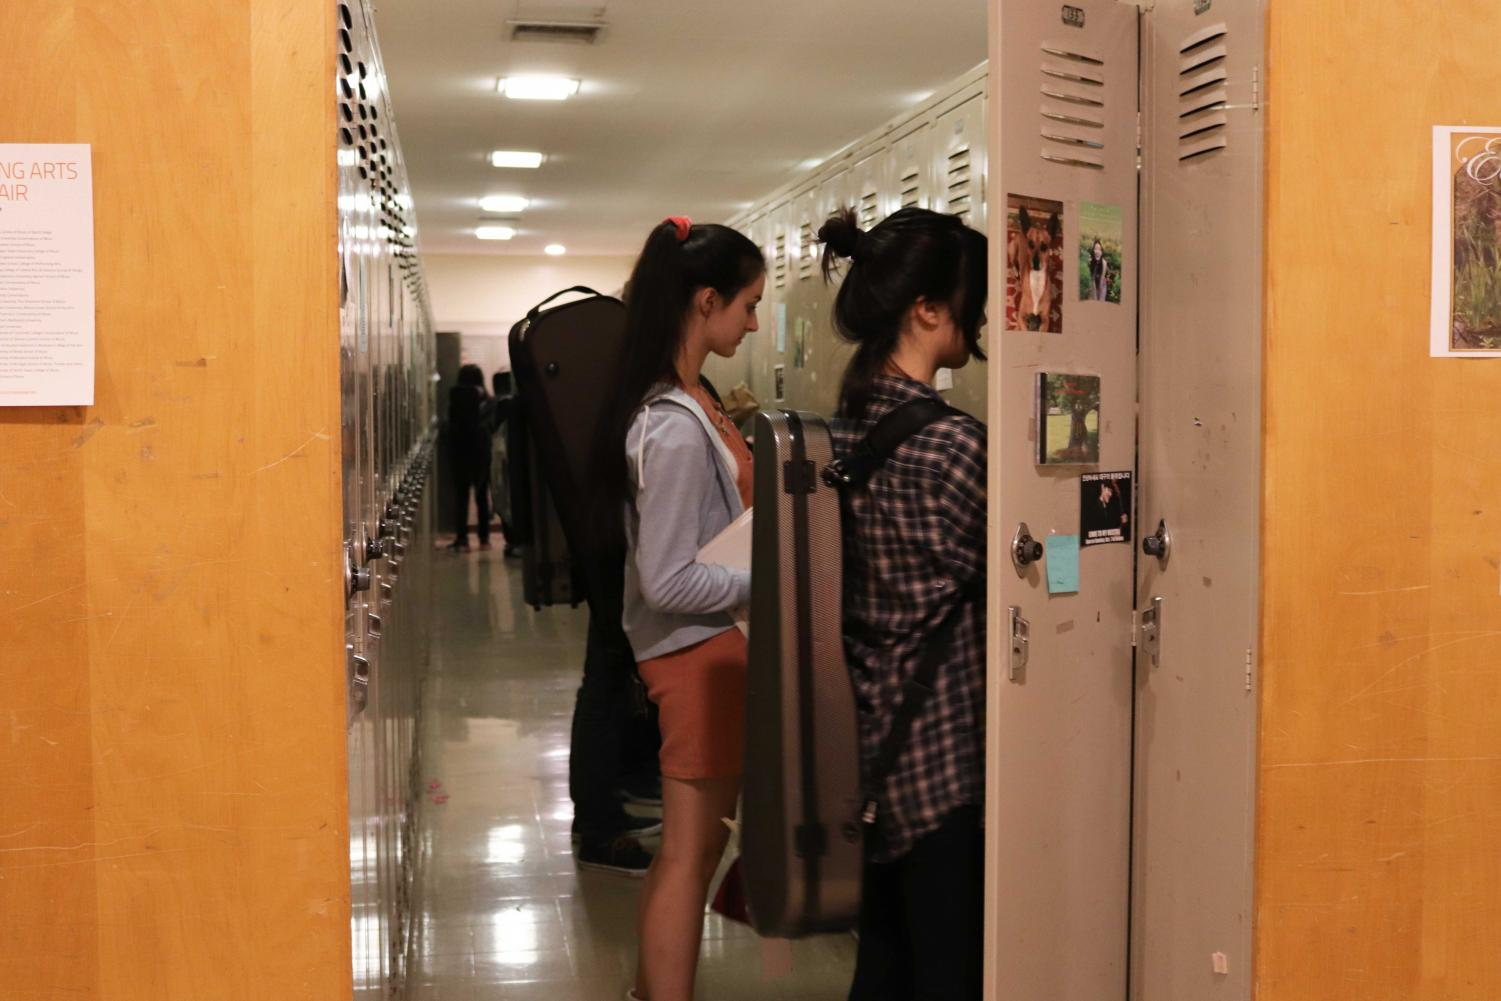 Conservatory students retrieve personal belongings from conservatory lockers.